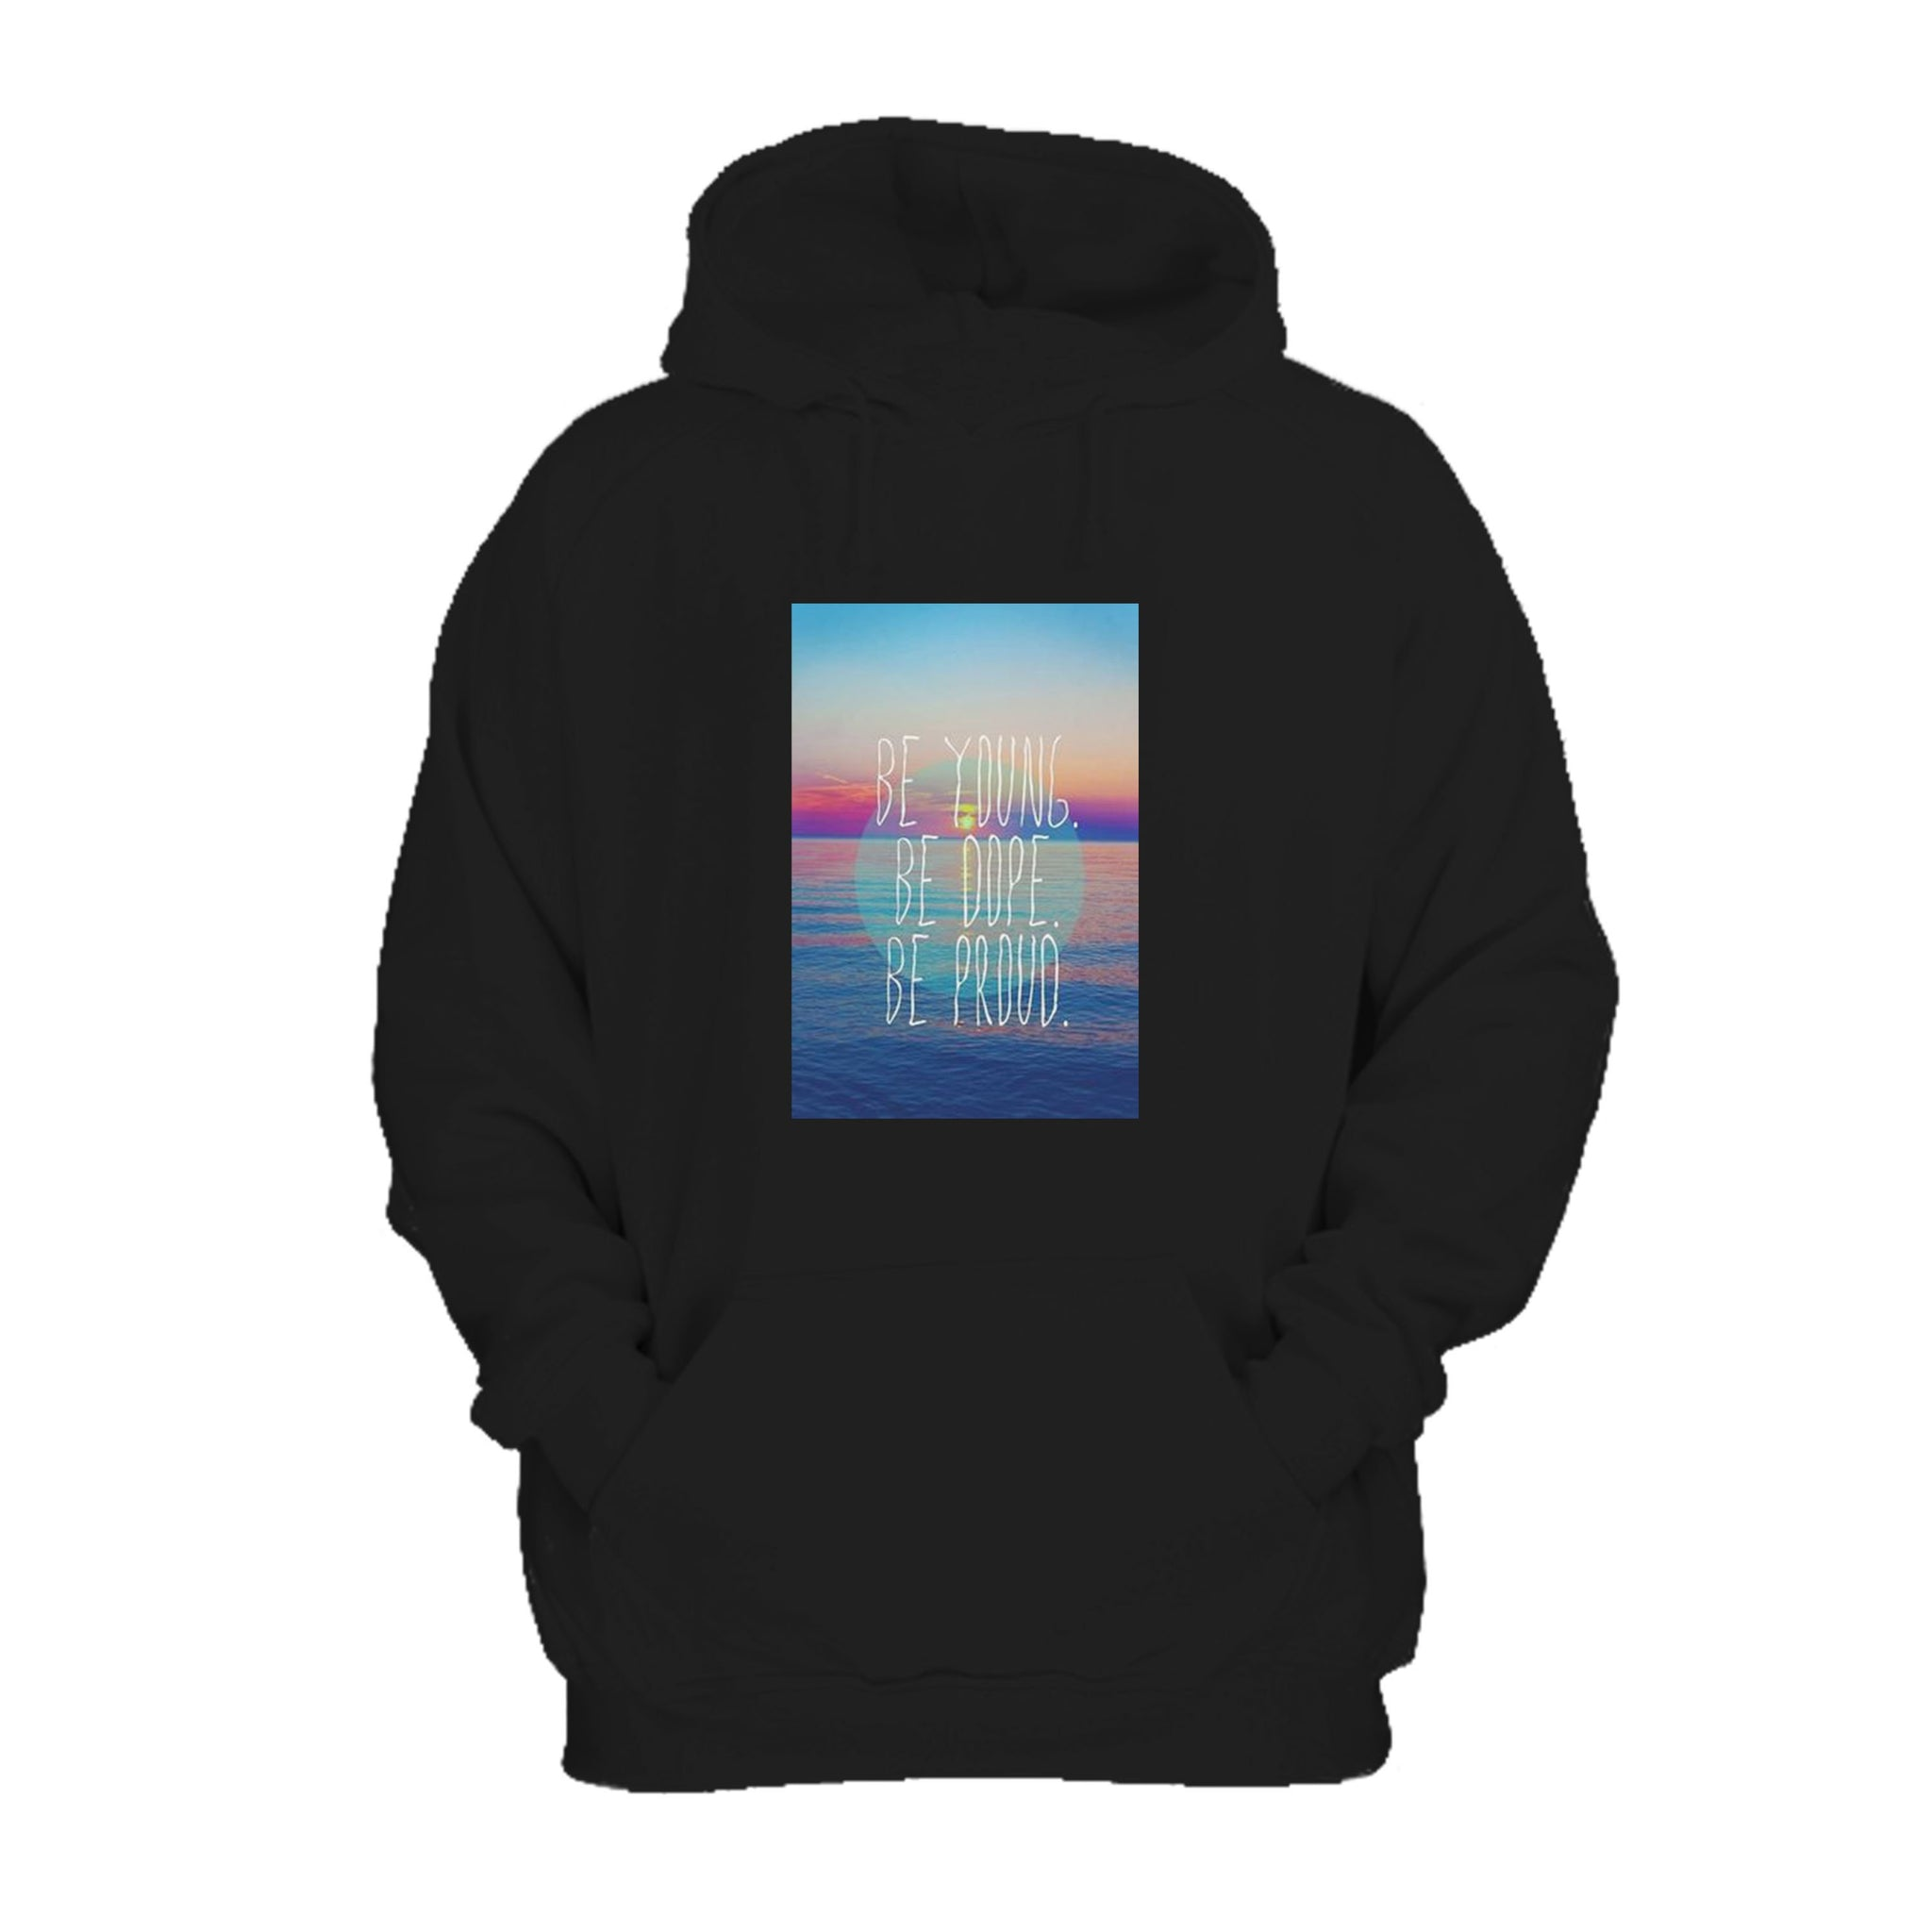 Like An American Lyrics Be Young Be Dope Be Proud Hoodie